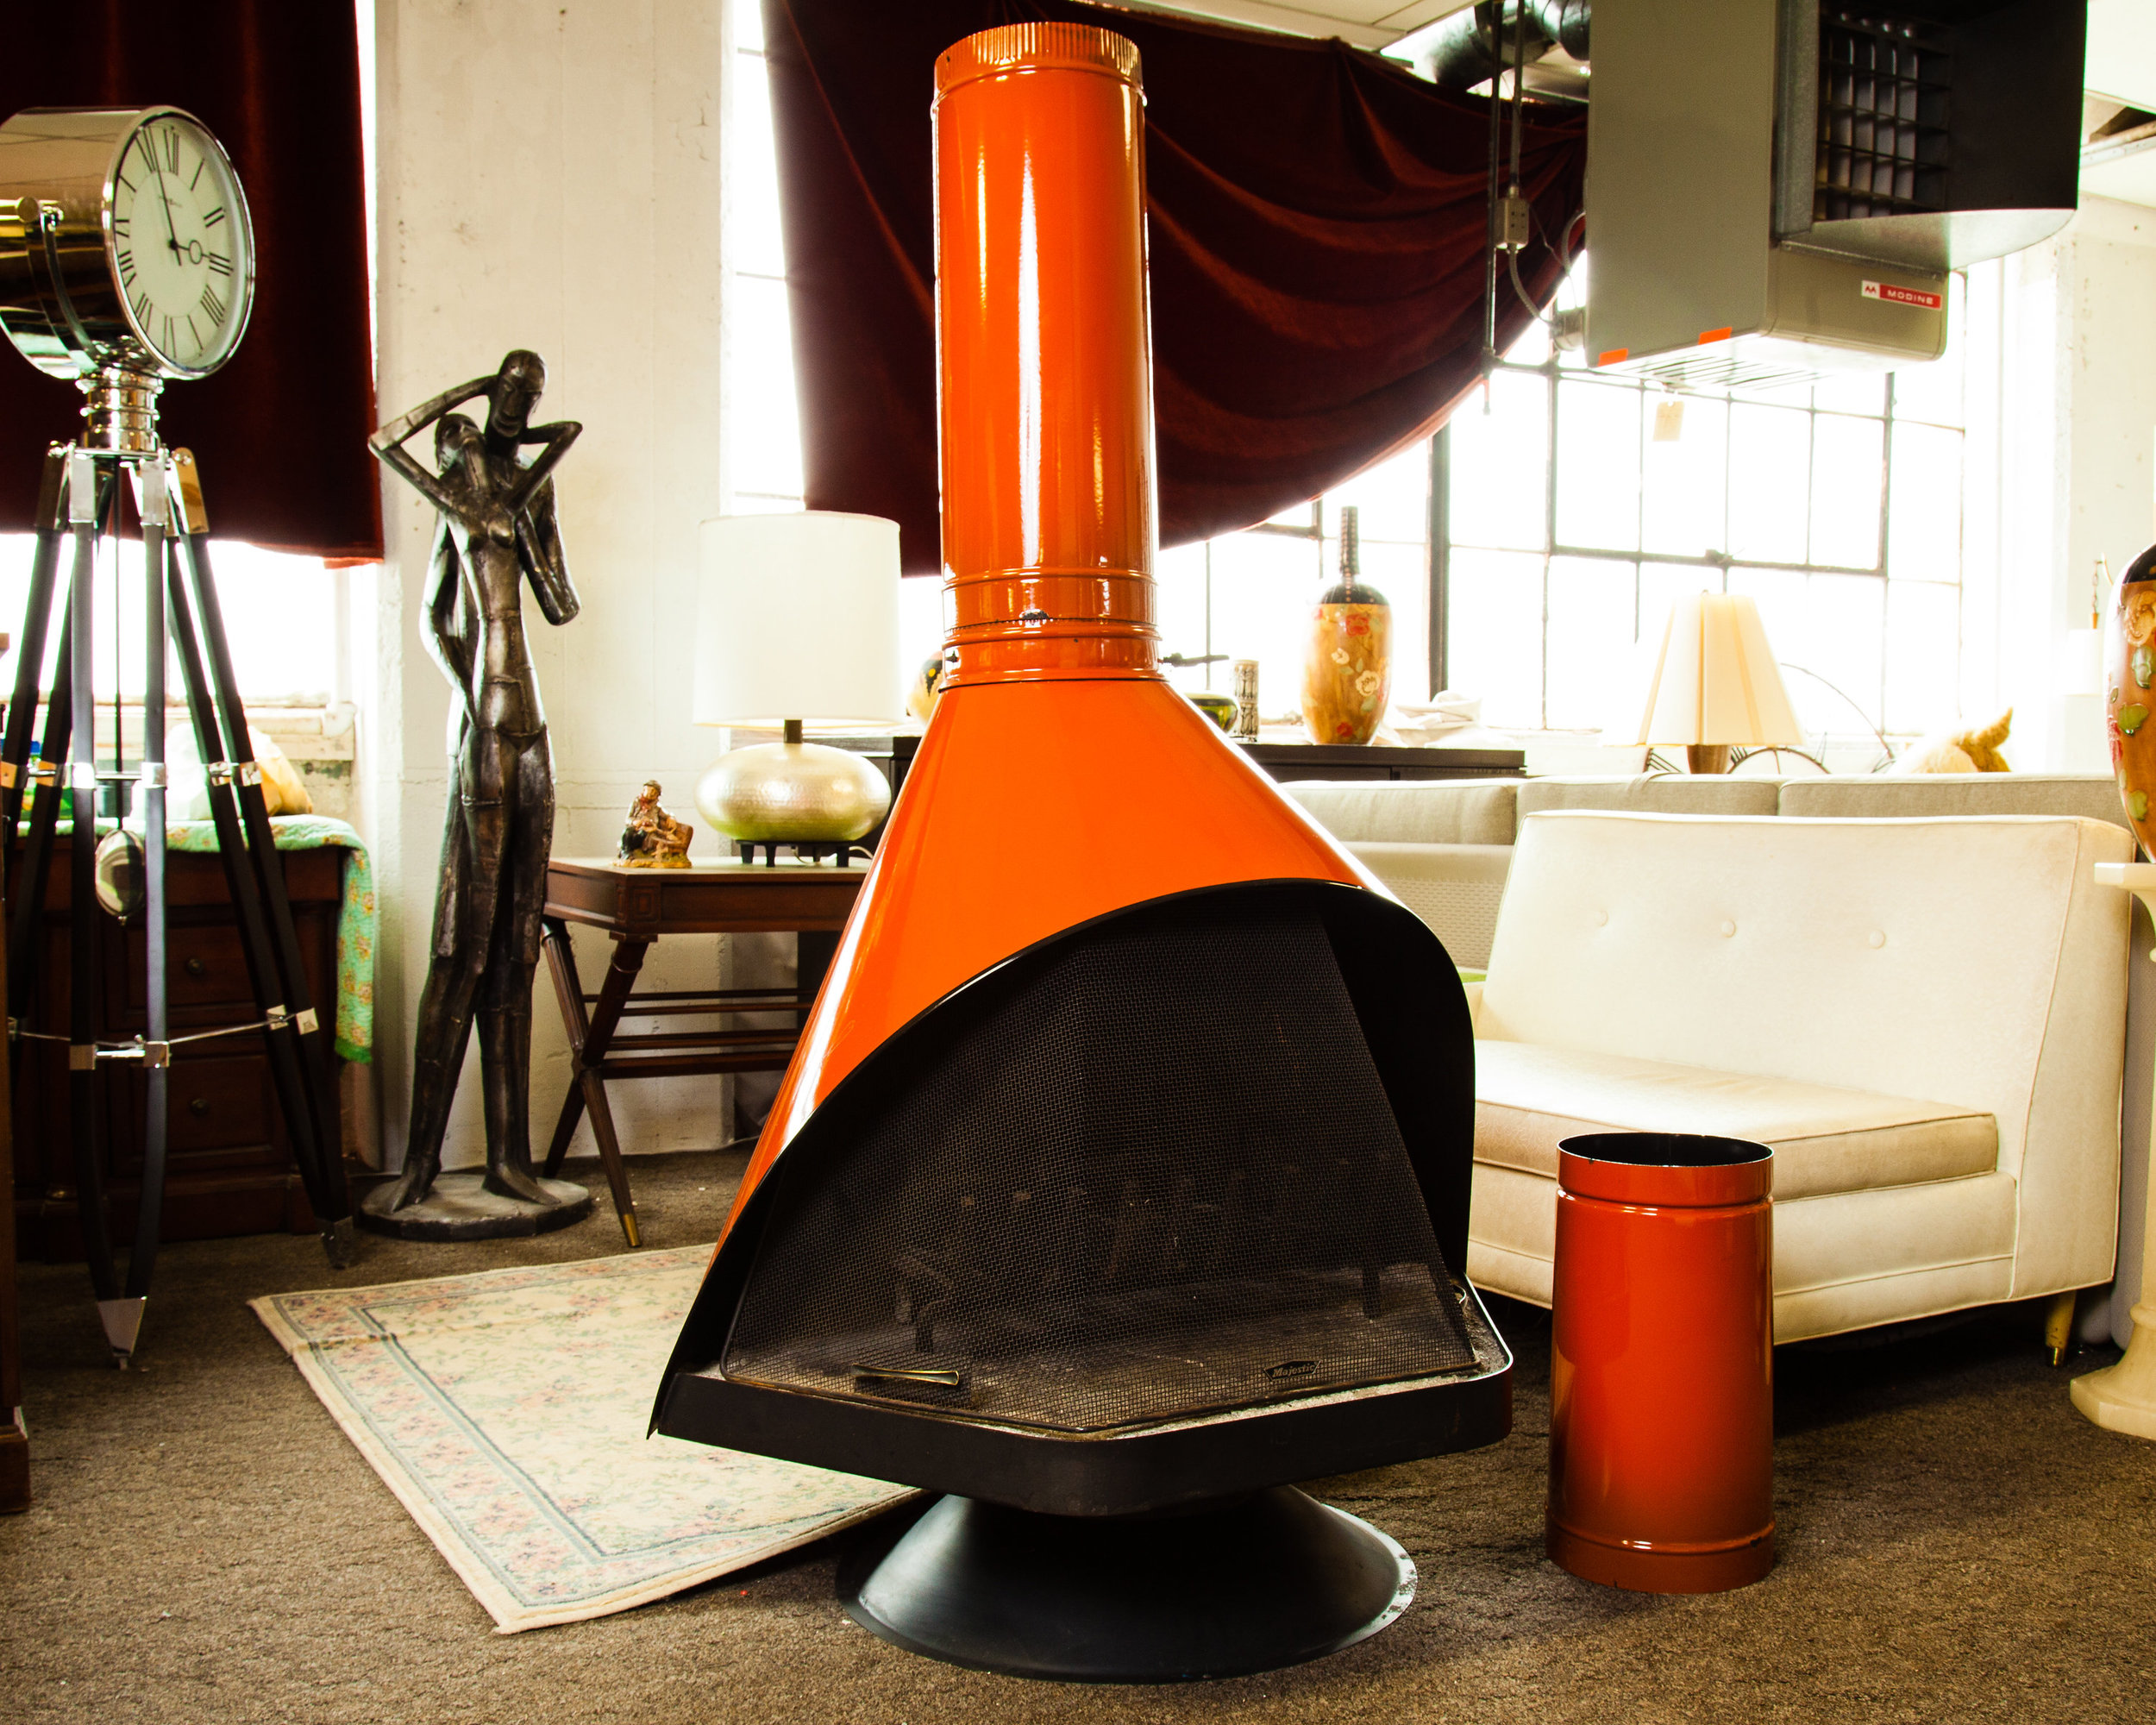 As the weather warms up, order this 1960's Wood Burning Free-Standing Fireplace for all of your outdoor bonfire and cooking desires.